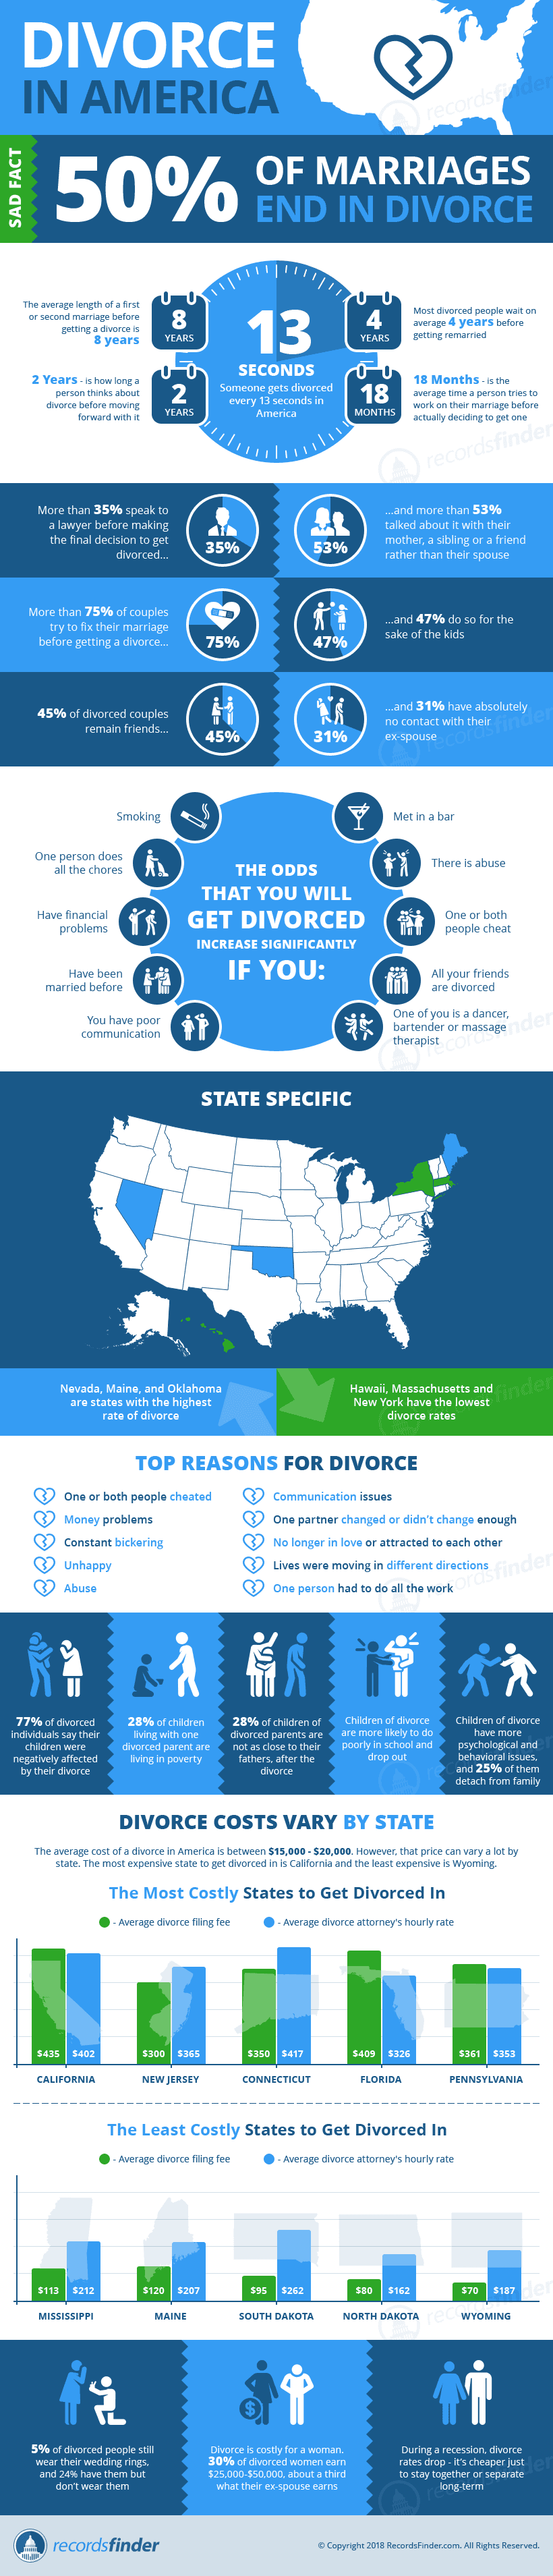 The Institution of Divorce in America: Facts and Figures - Infographic